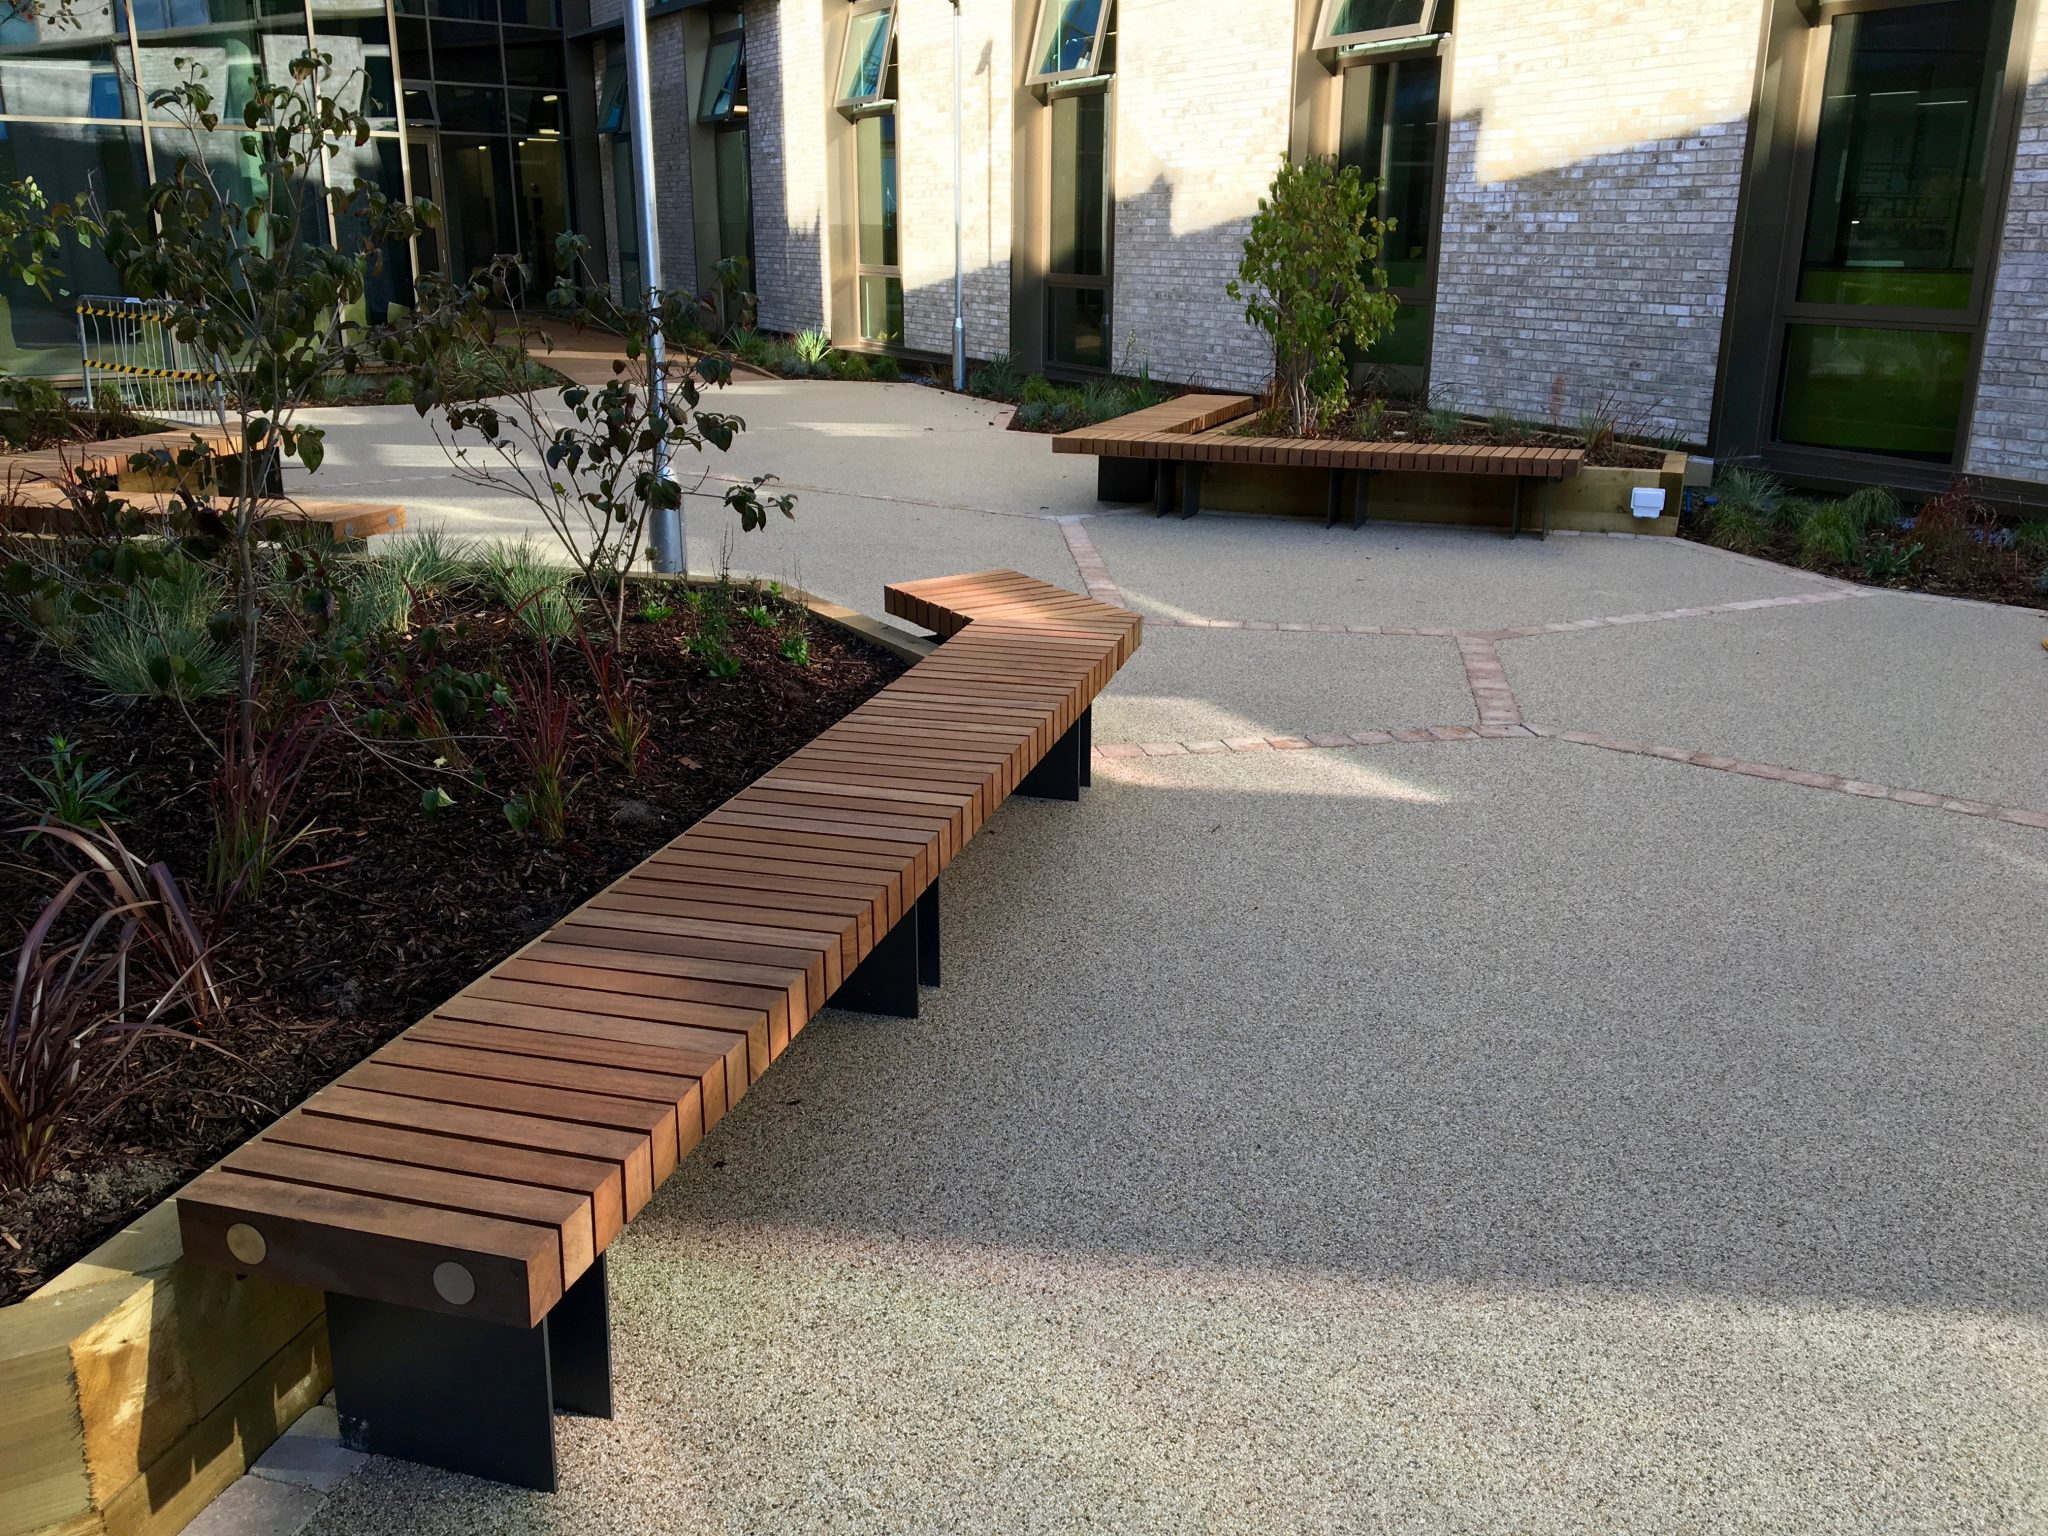 New exeter bench from benchmark design street furniture